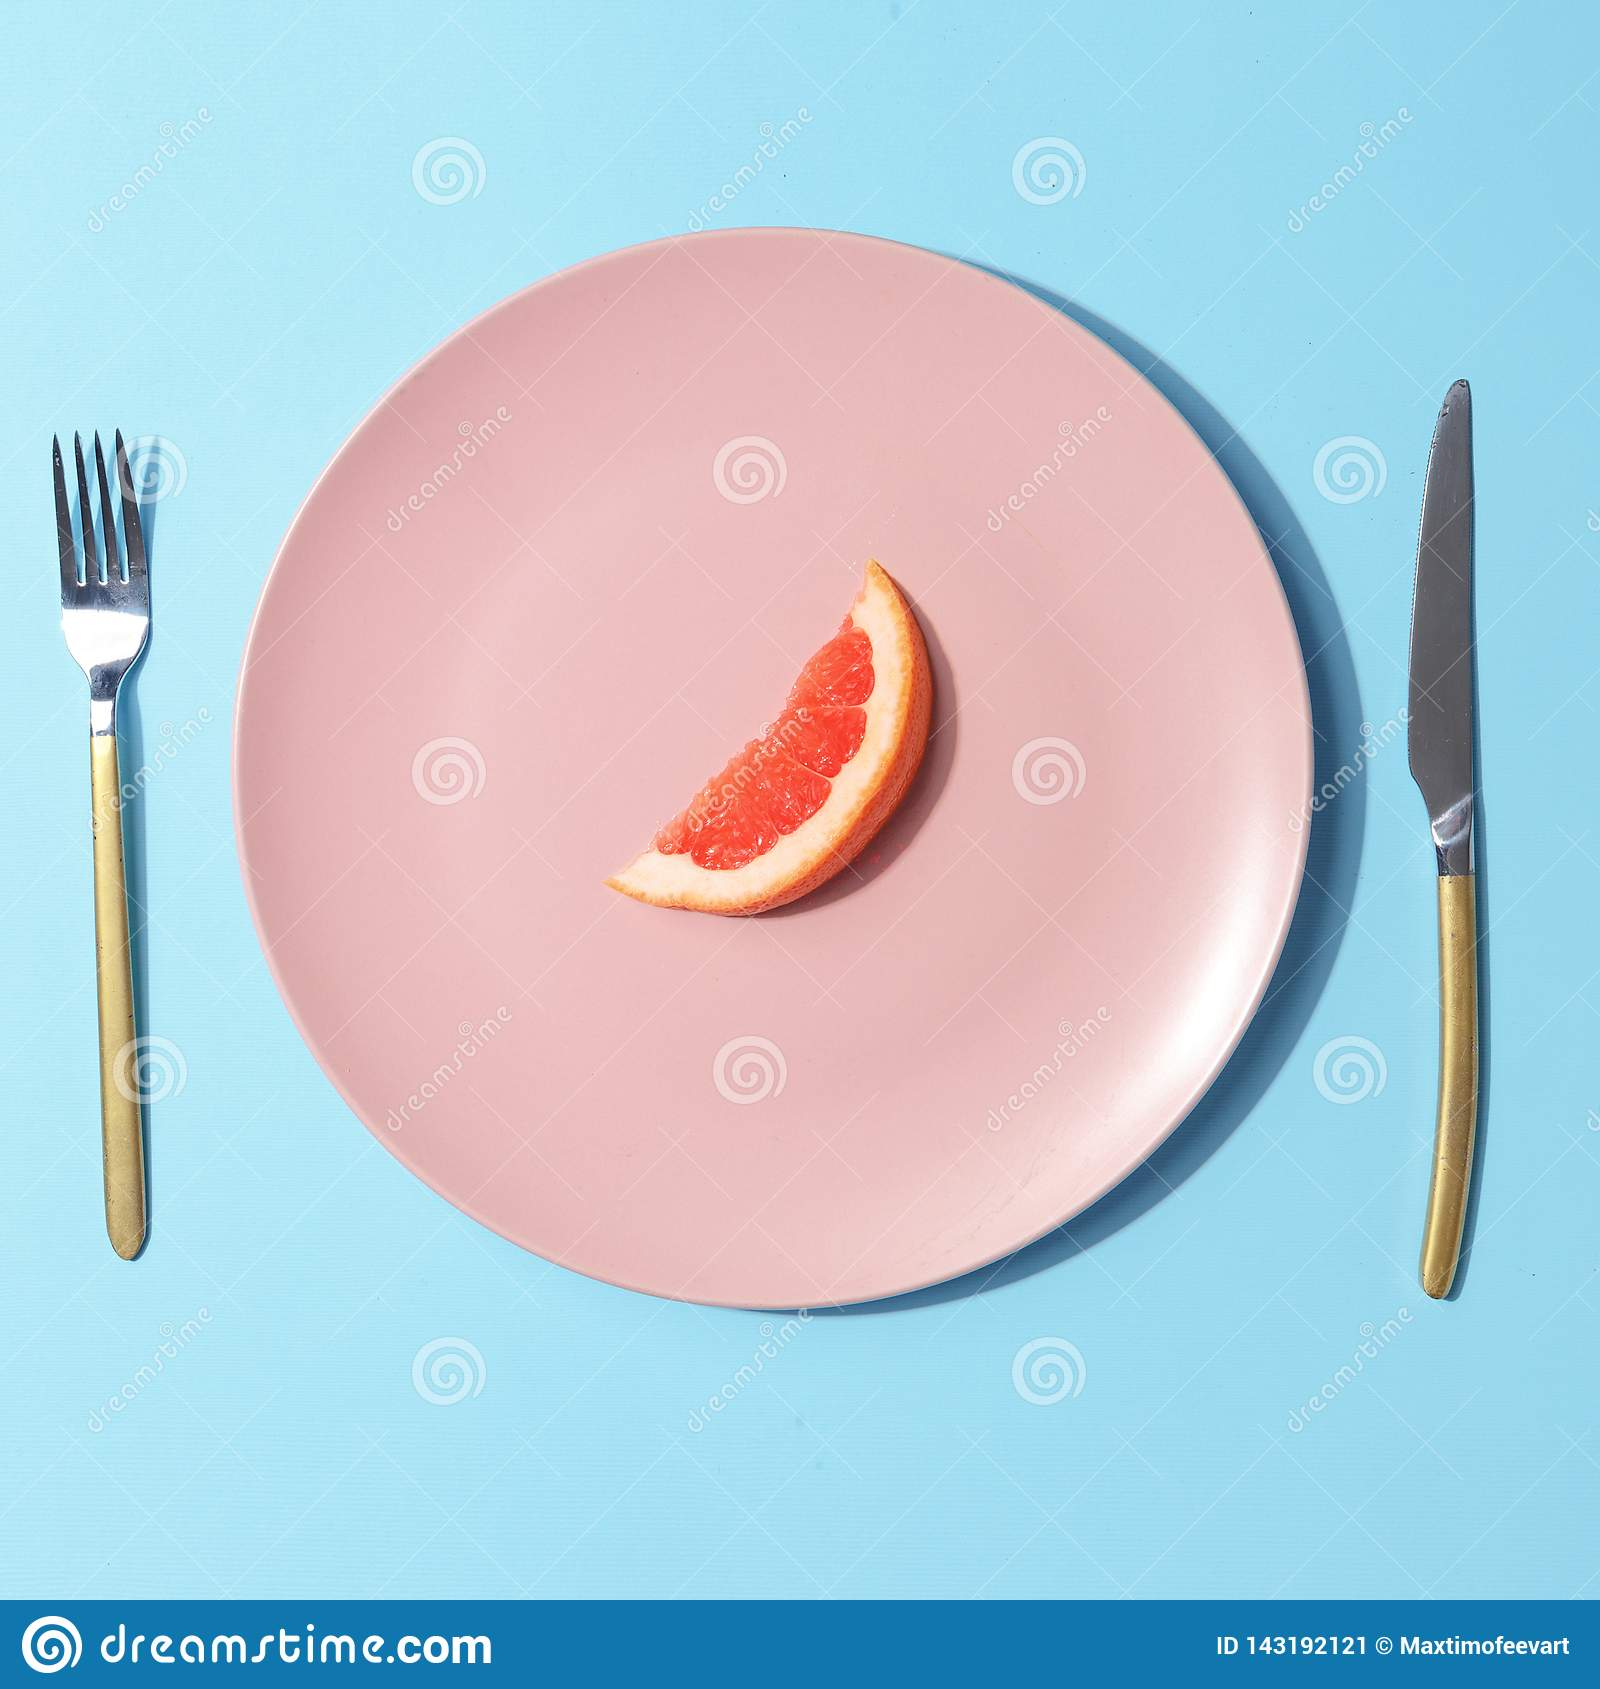 A slice of grapefruit on a pink plate. Minimalistic concept. Top view